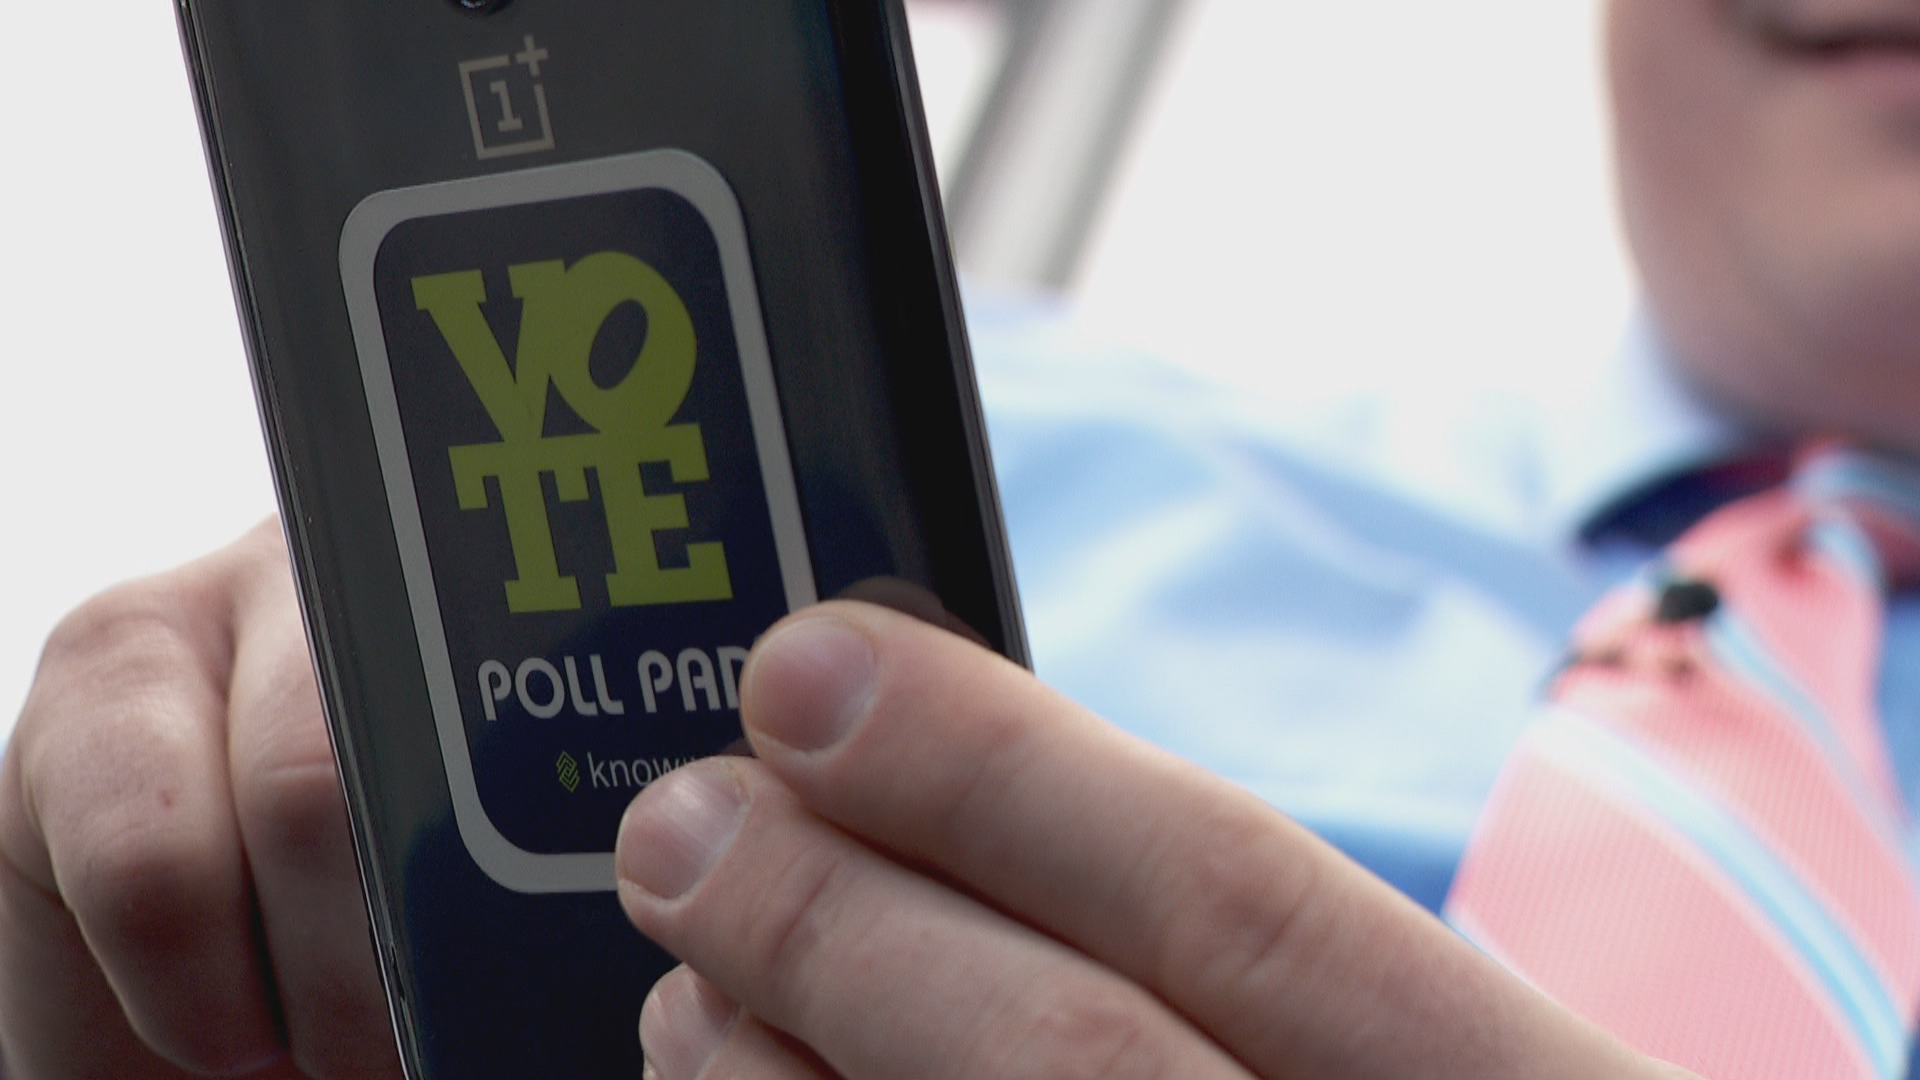 Utah County hopes to boost voter turnout, save people time with new app. (KUTV)